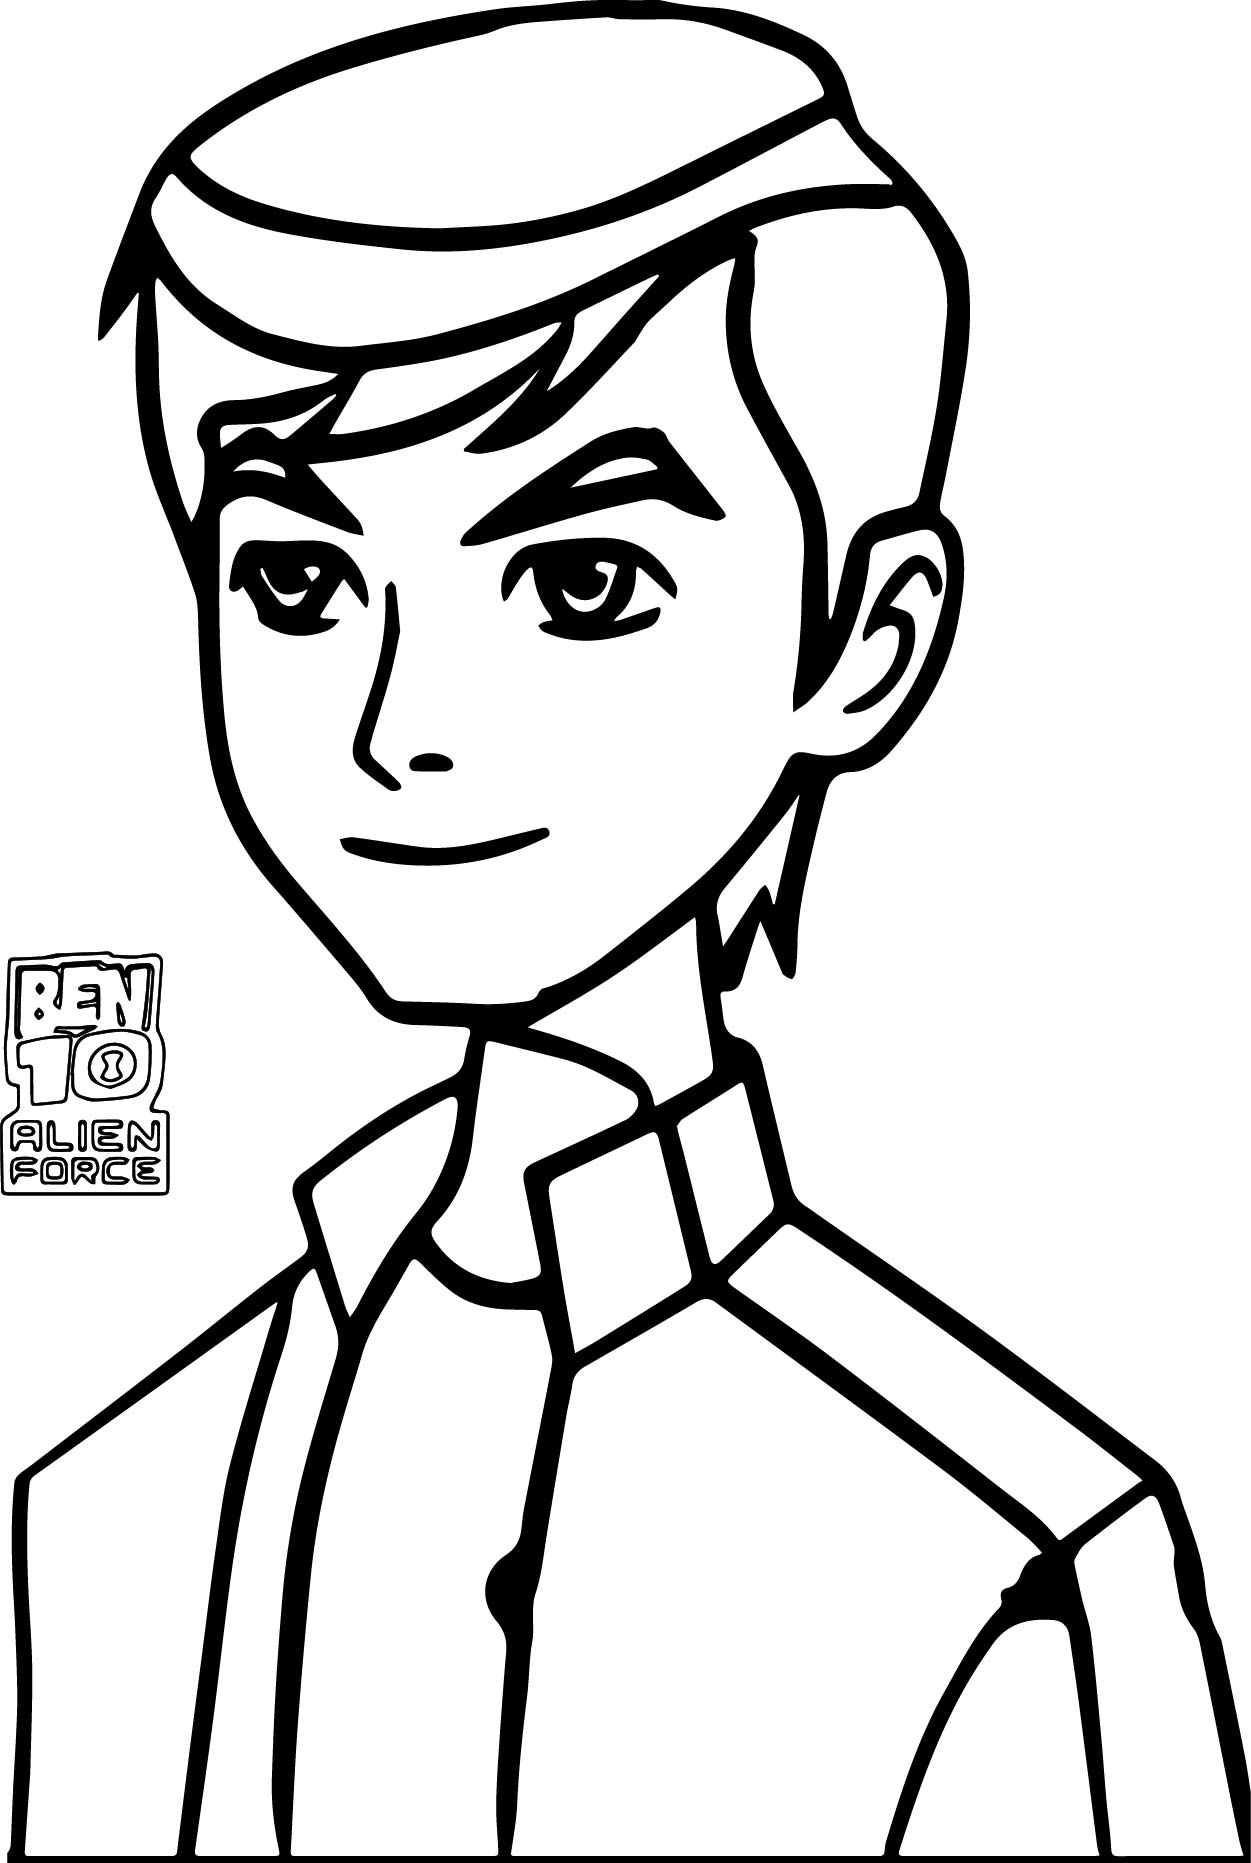 ben 10 alien force episode x ben coloring page wecoloringpage